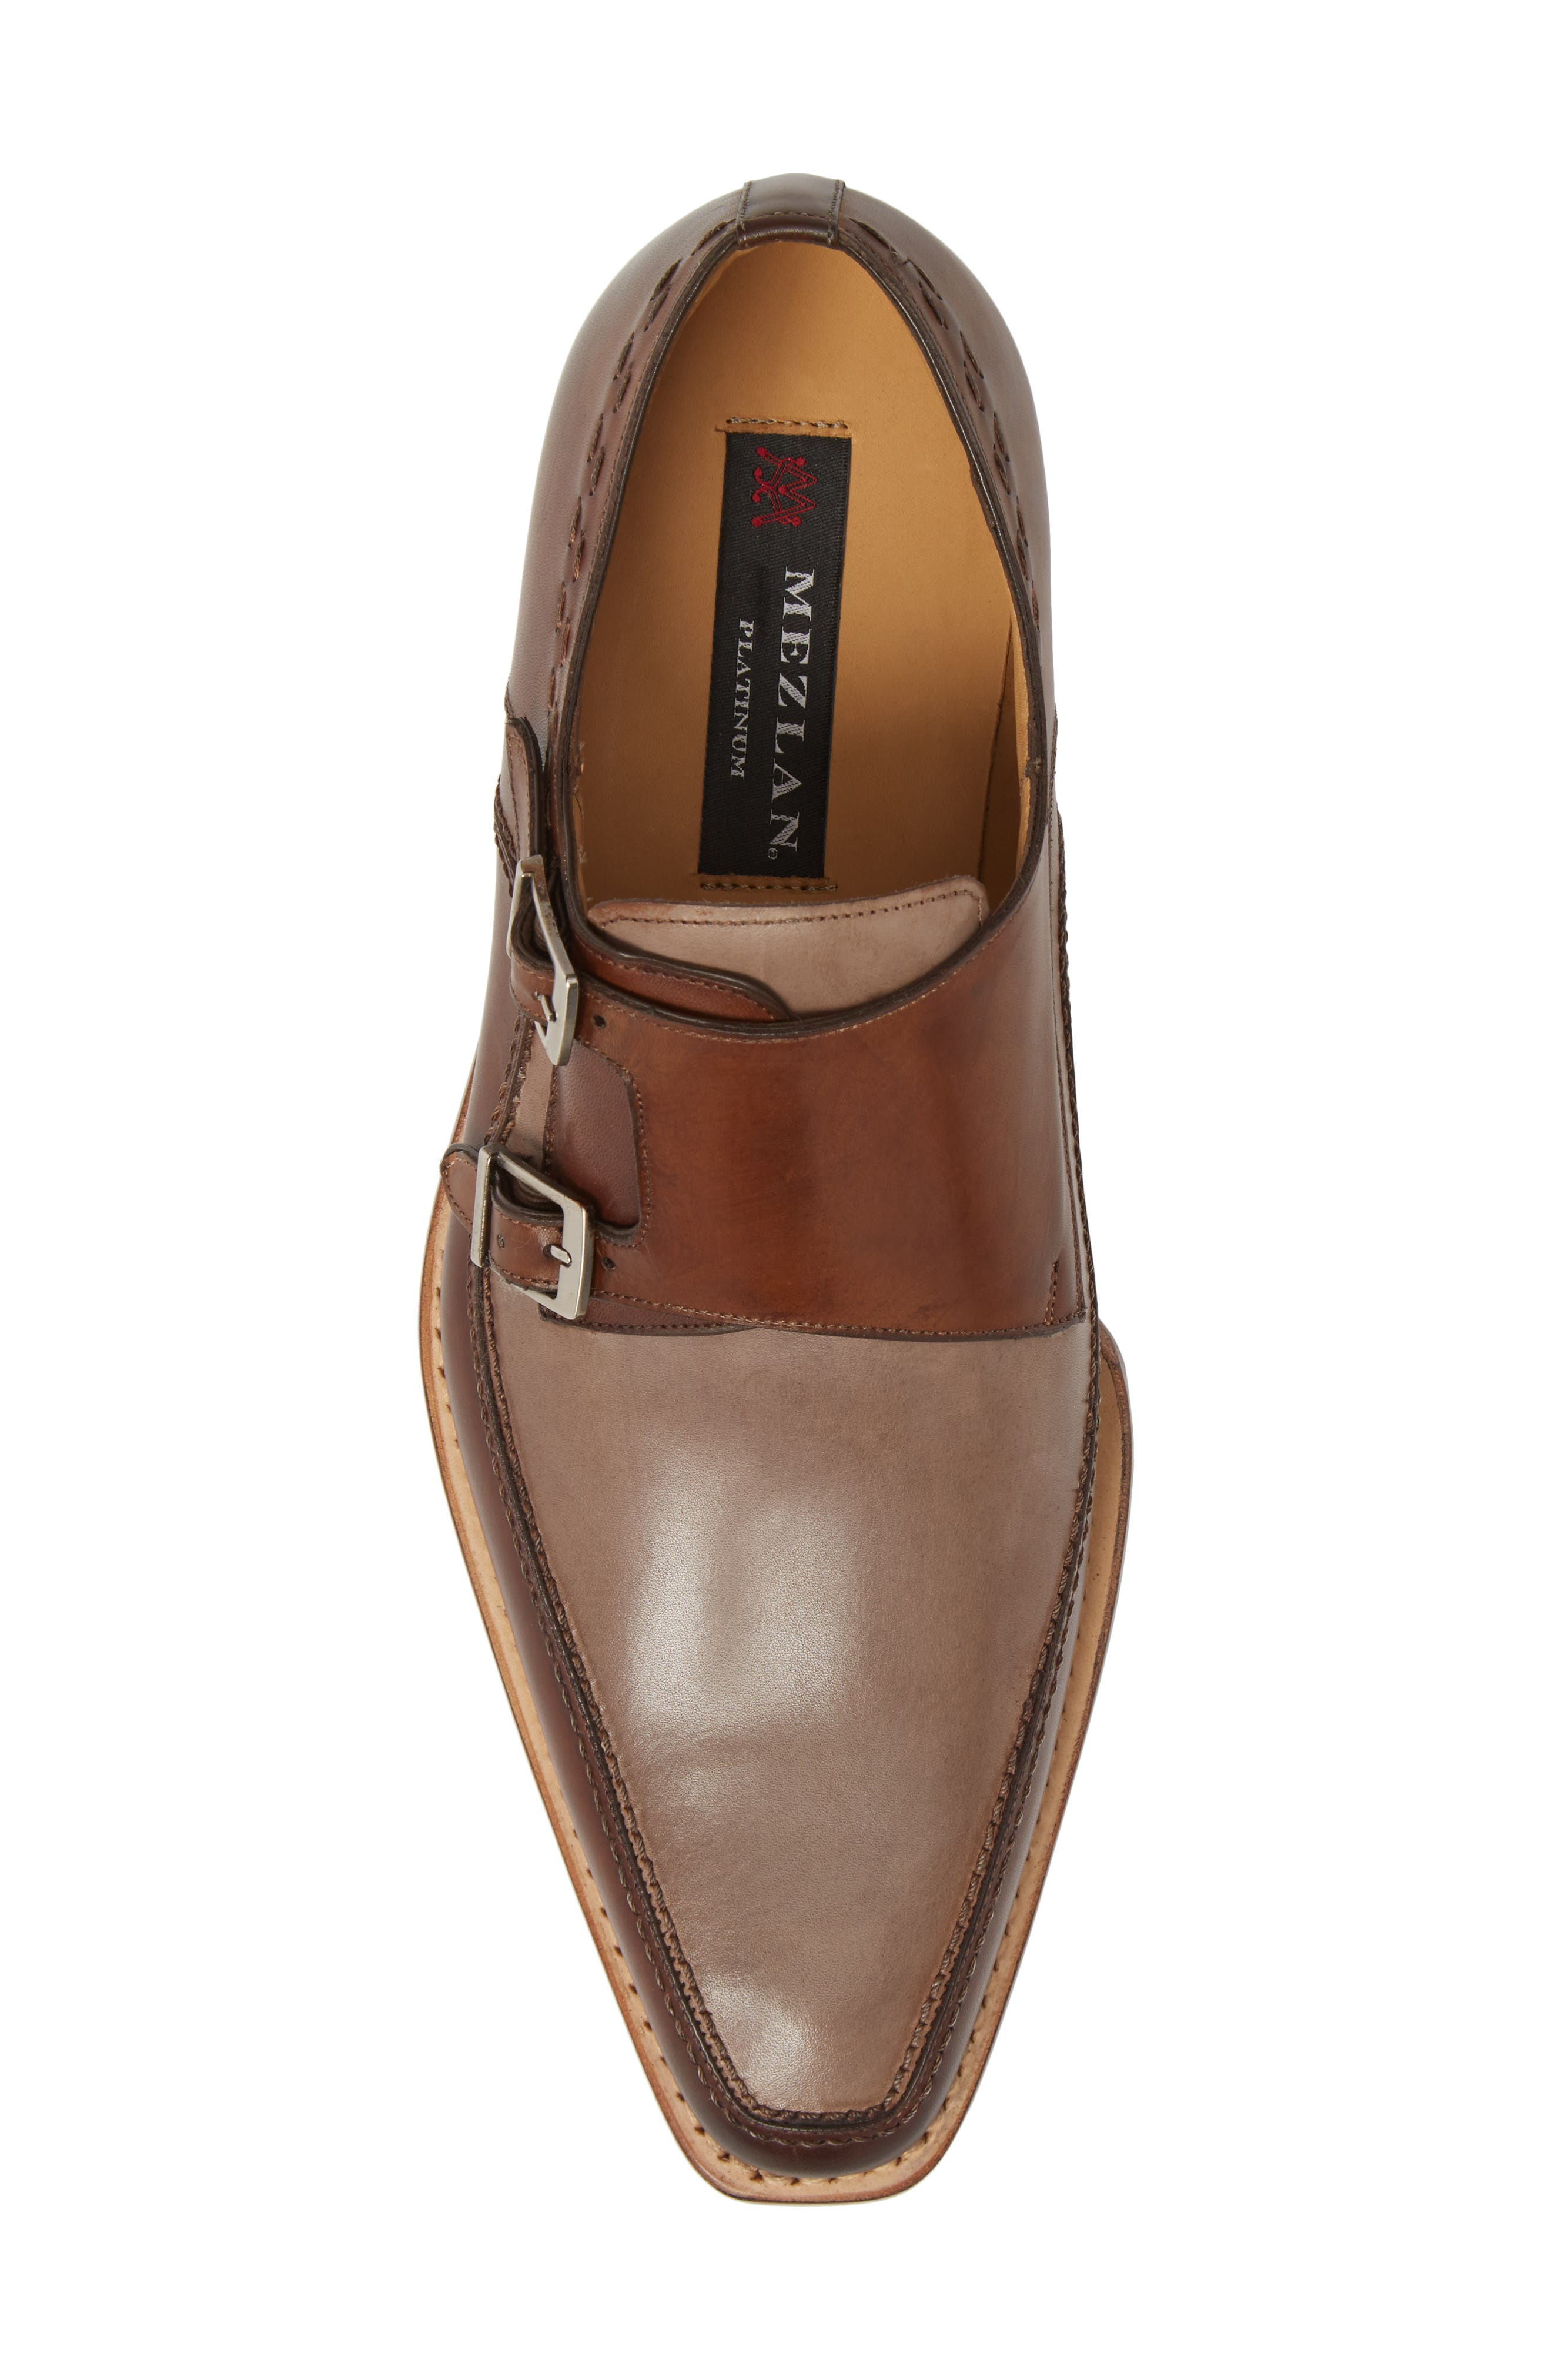 Magno Double Monk Strap Shoe,                             Alternate thumbnail 5, color,                             Brown Leather